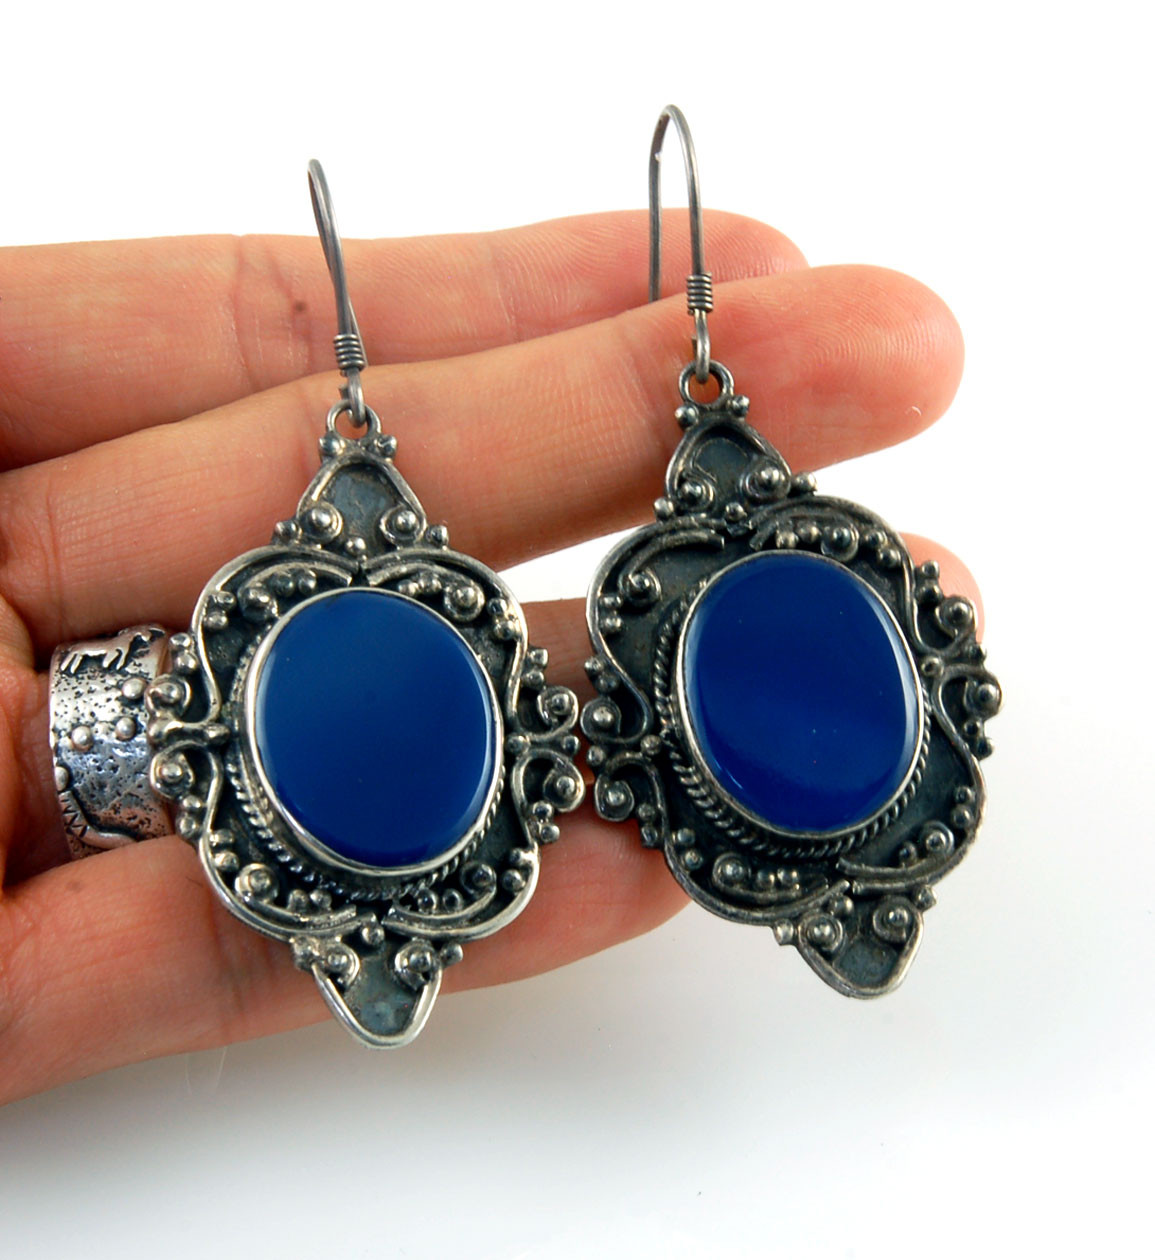 Vintage Style Black /& Blue Stone Long Drop Dangly Earrings ~ Turquoise Agate